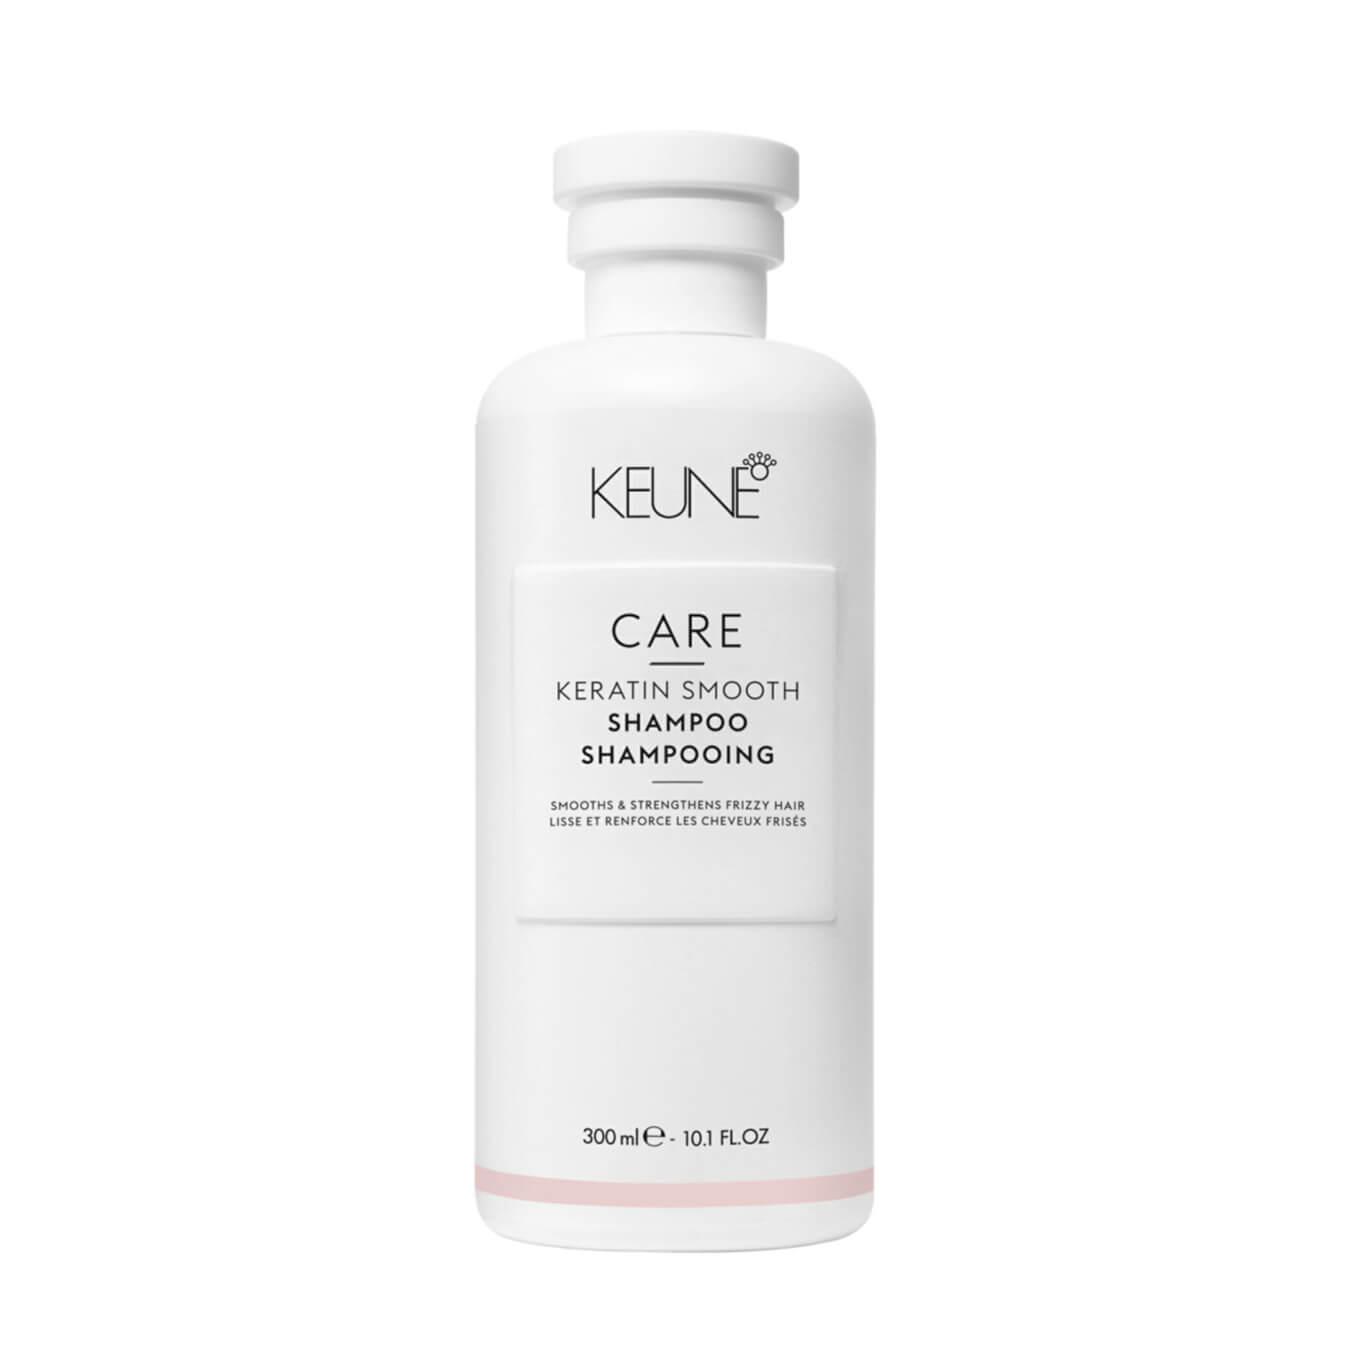 Kauf Keune Care Keratin Smooth Shampoo 300ml